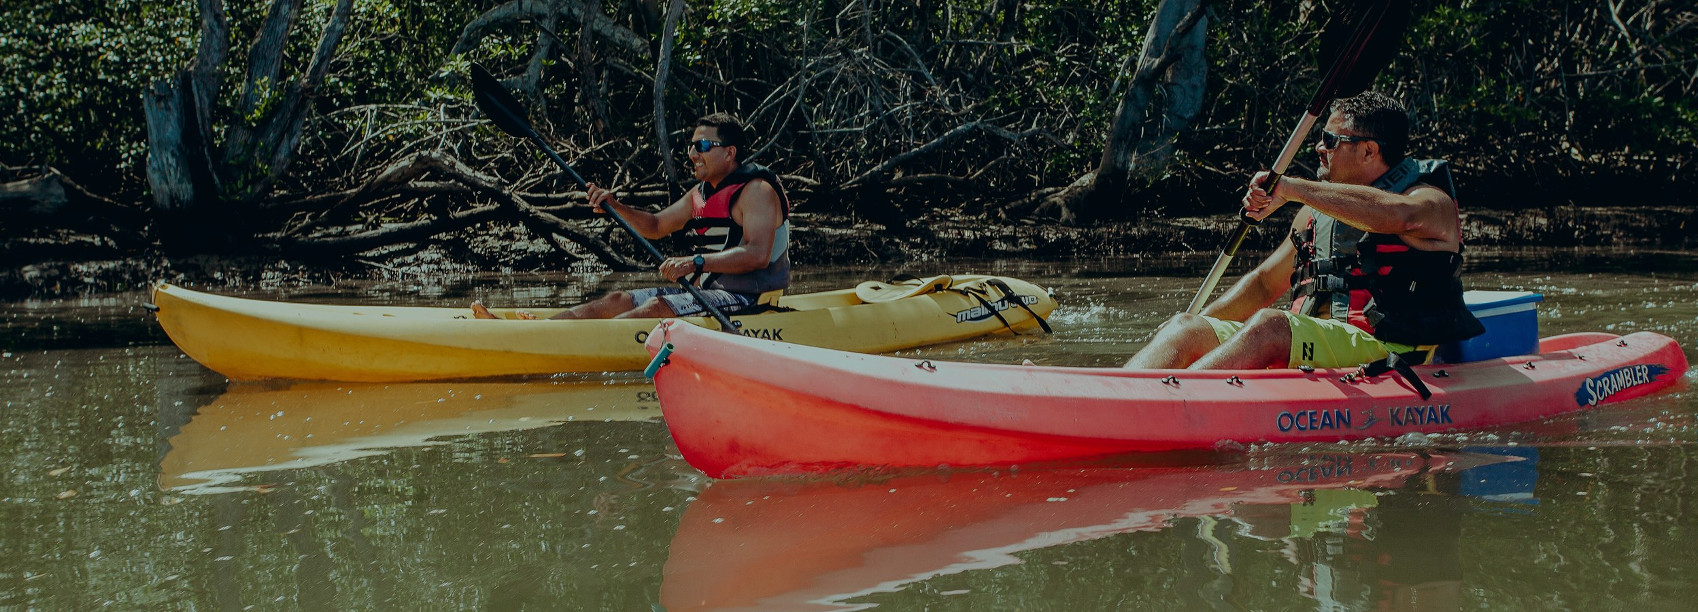 Tamarindo Kayak Estuary Tour - Native's Way Costa Rica - Tamarindo Tours & Transfers